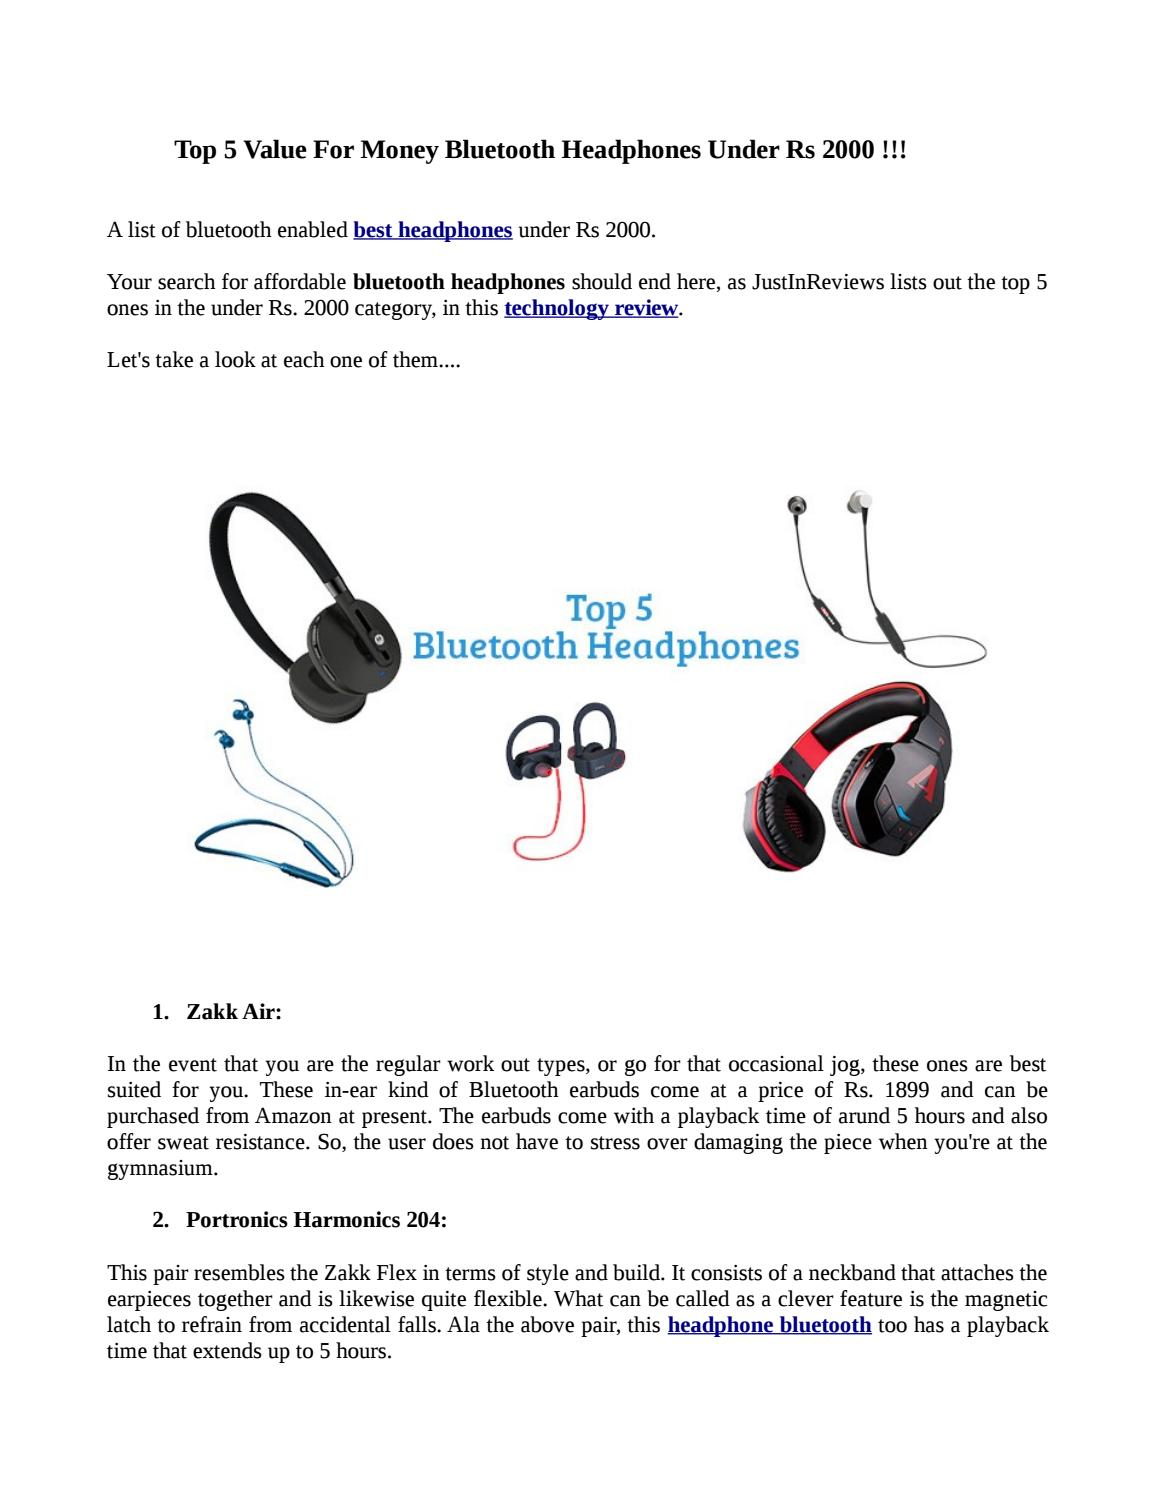 Top 5 Value For Money Bluetooth Headphones Under Rs 2000 By Sonali456 Issuu